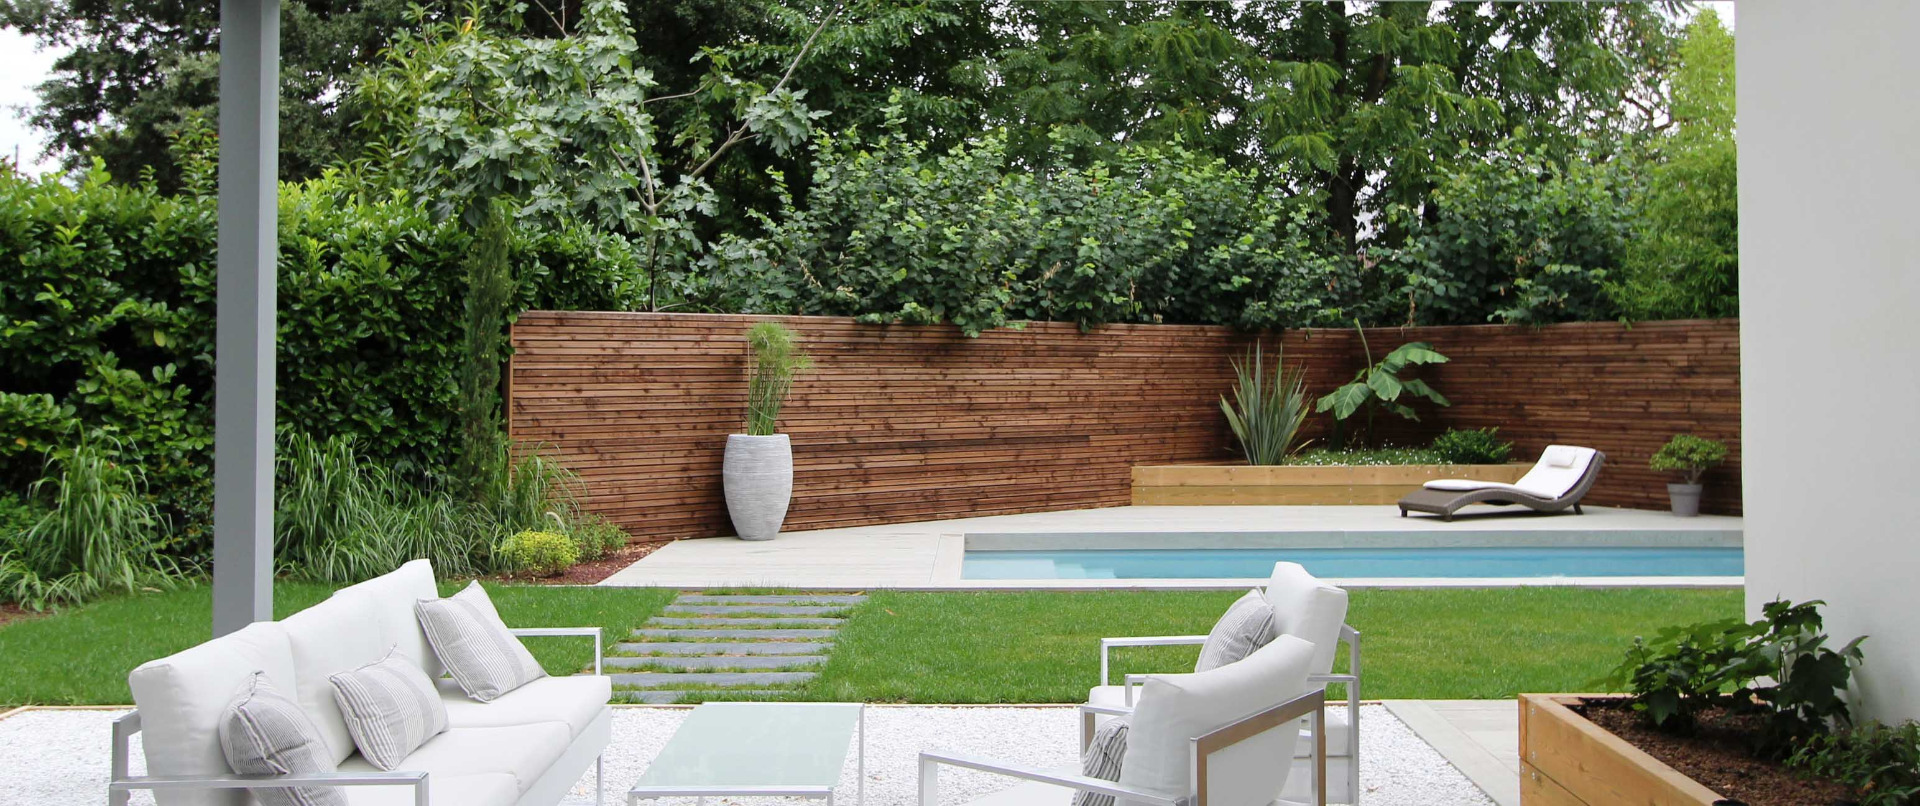 Amenagement jardin image - Amenagement jardin 2000m2 ...